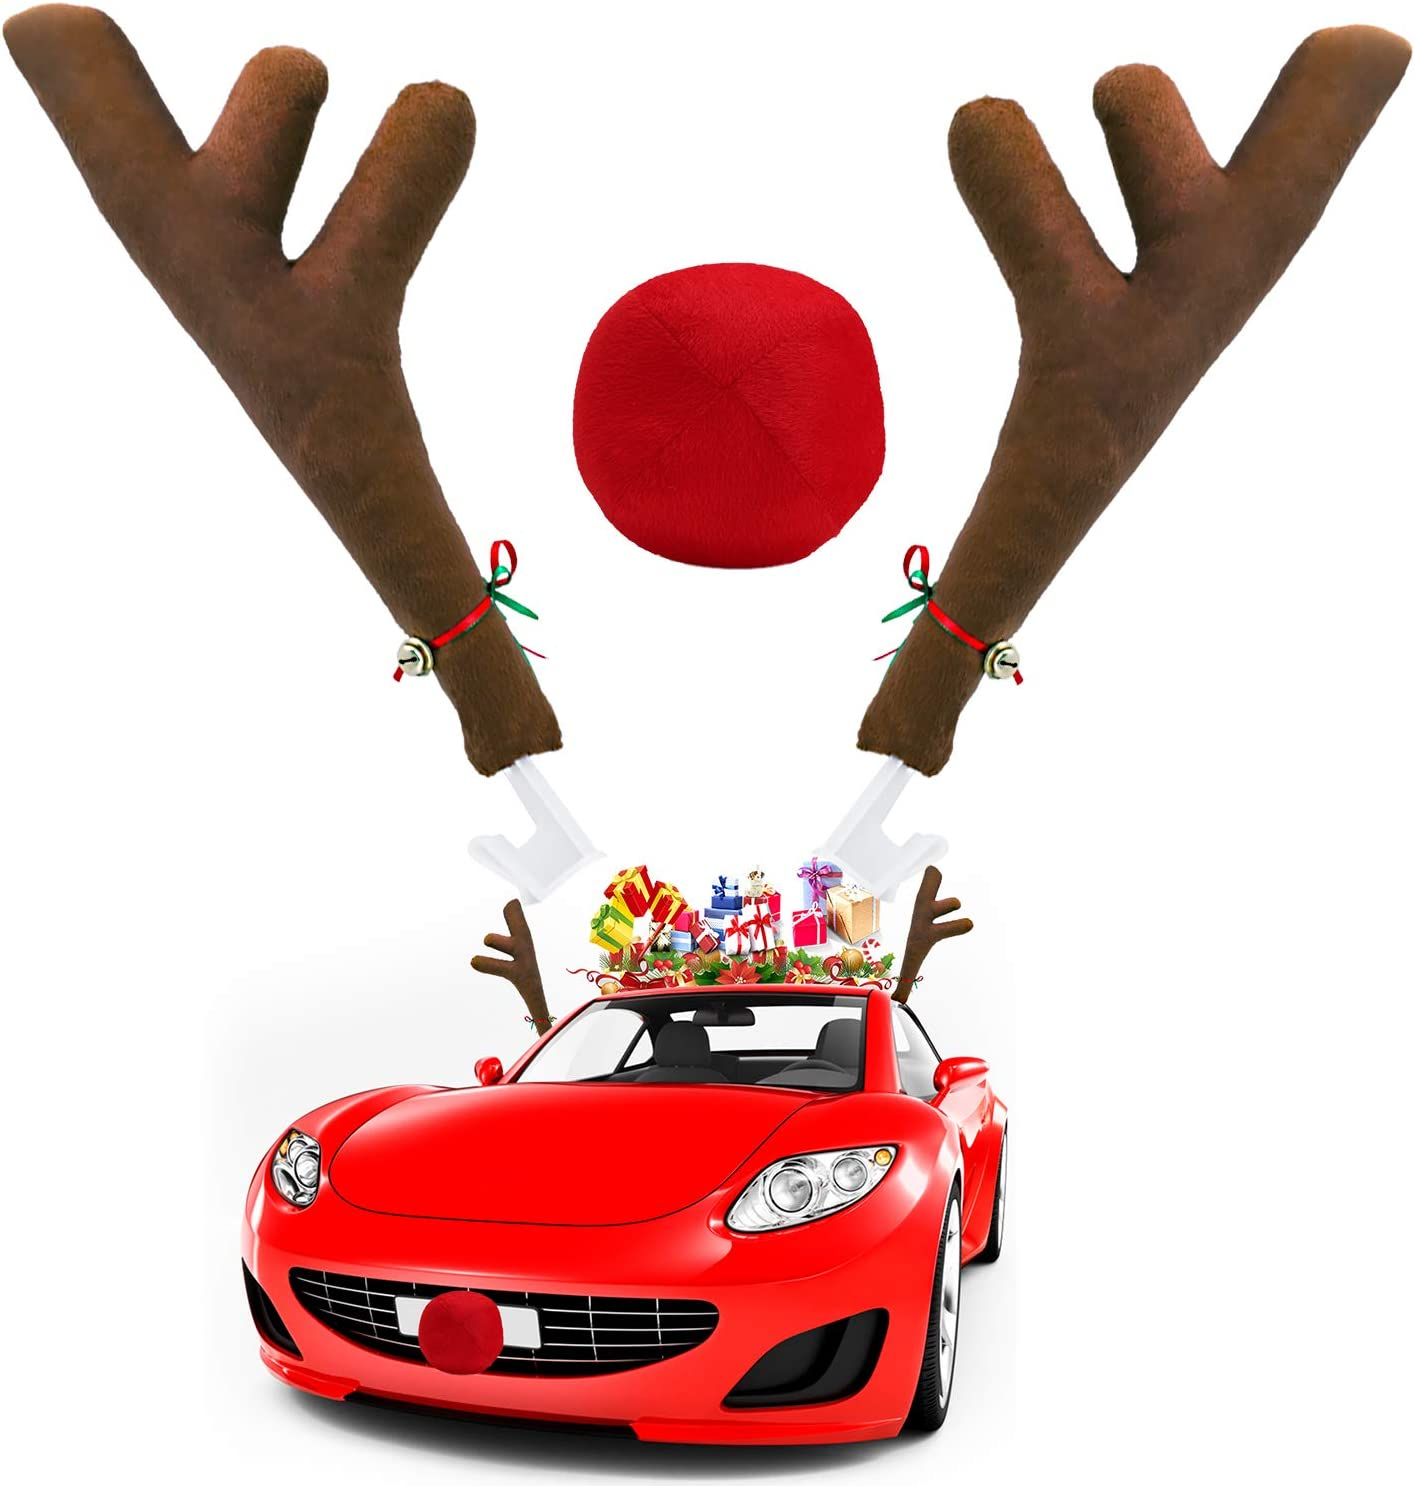 Ankuka Car Reindeer Antlers & Nose Decorations, Window Roof-Top & Front Grille Rudolf Reindeer Jingle Bell Christmas Costume Auto Accessories